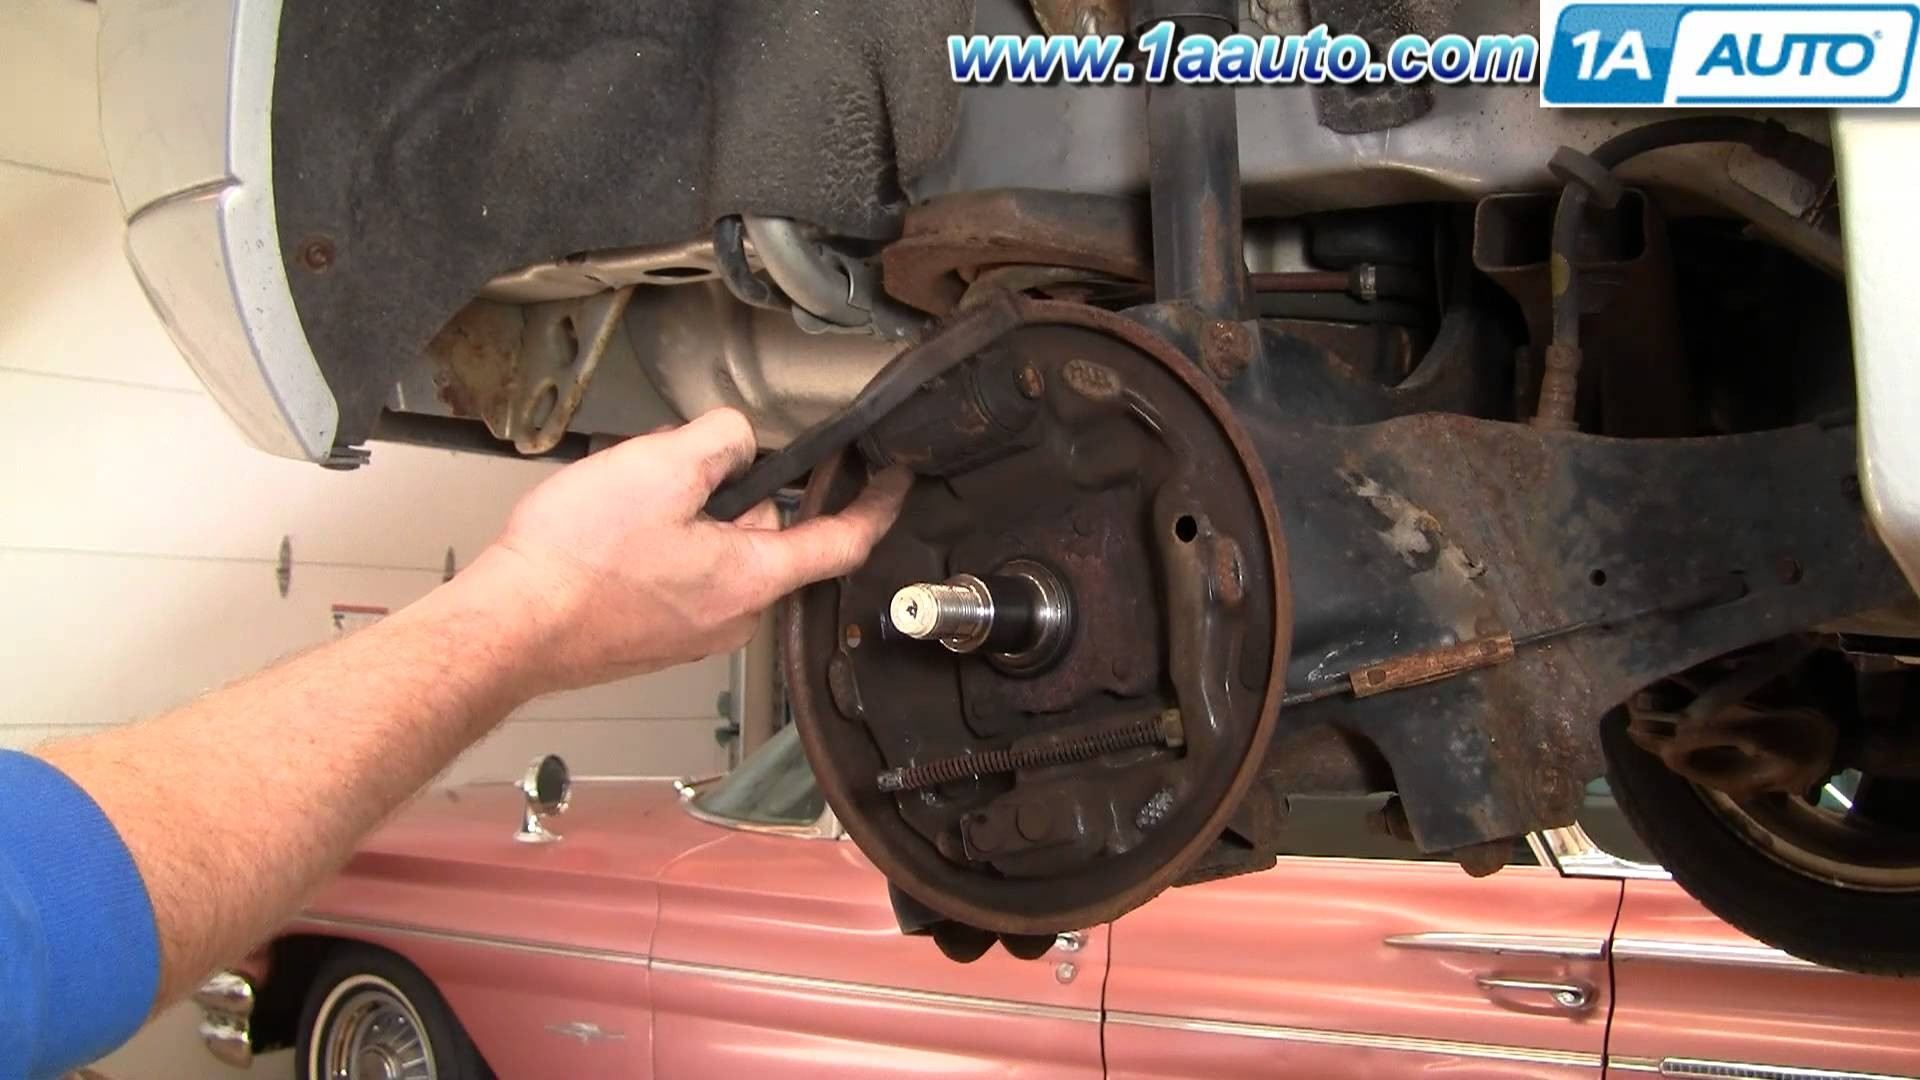 Drum Brake Diagram How to Install Replace Rear Drum Brakes ford Focus 00 11 1aauto Of Drum Brake Diagram